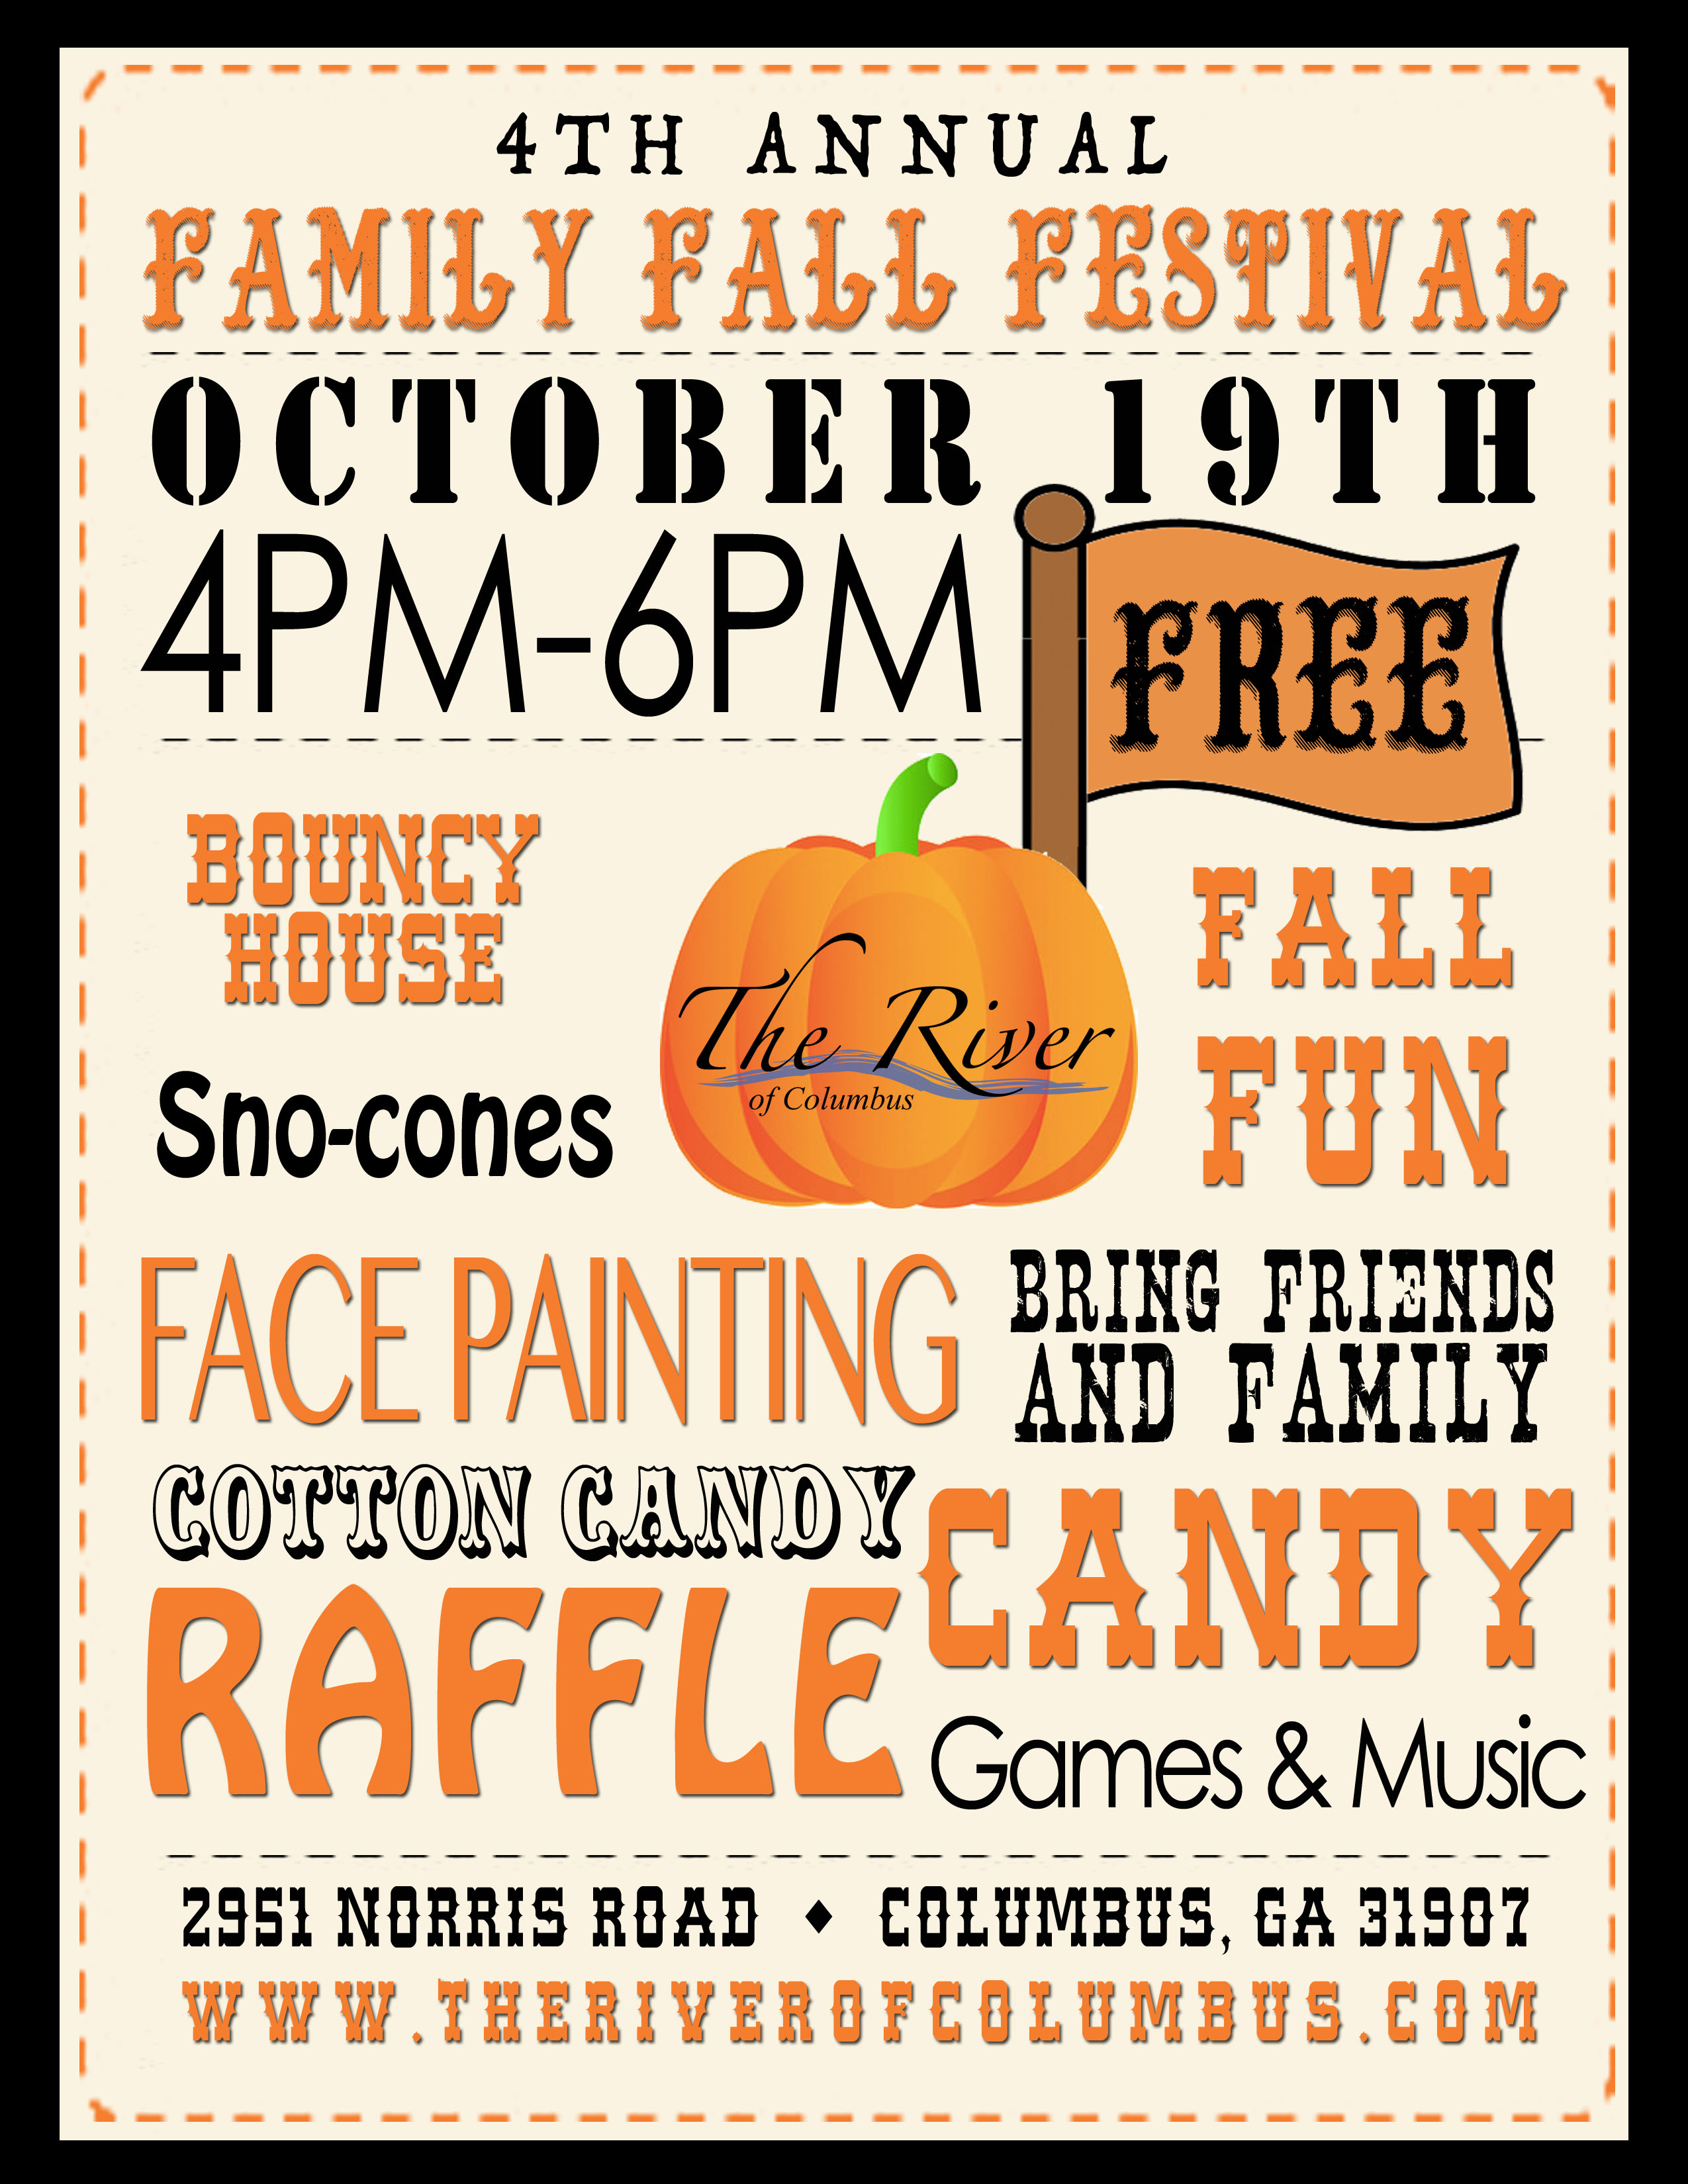 Fall Festival At The River Of Columbus Church